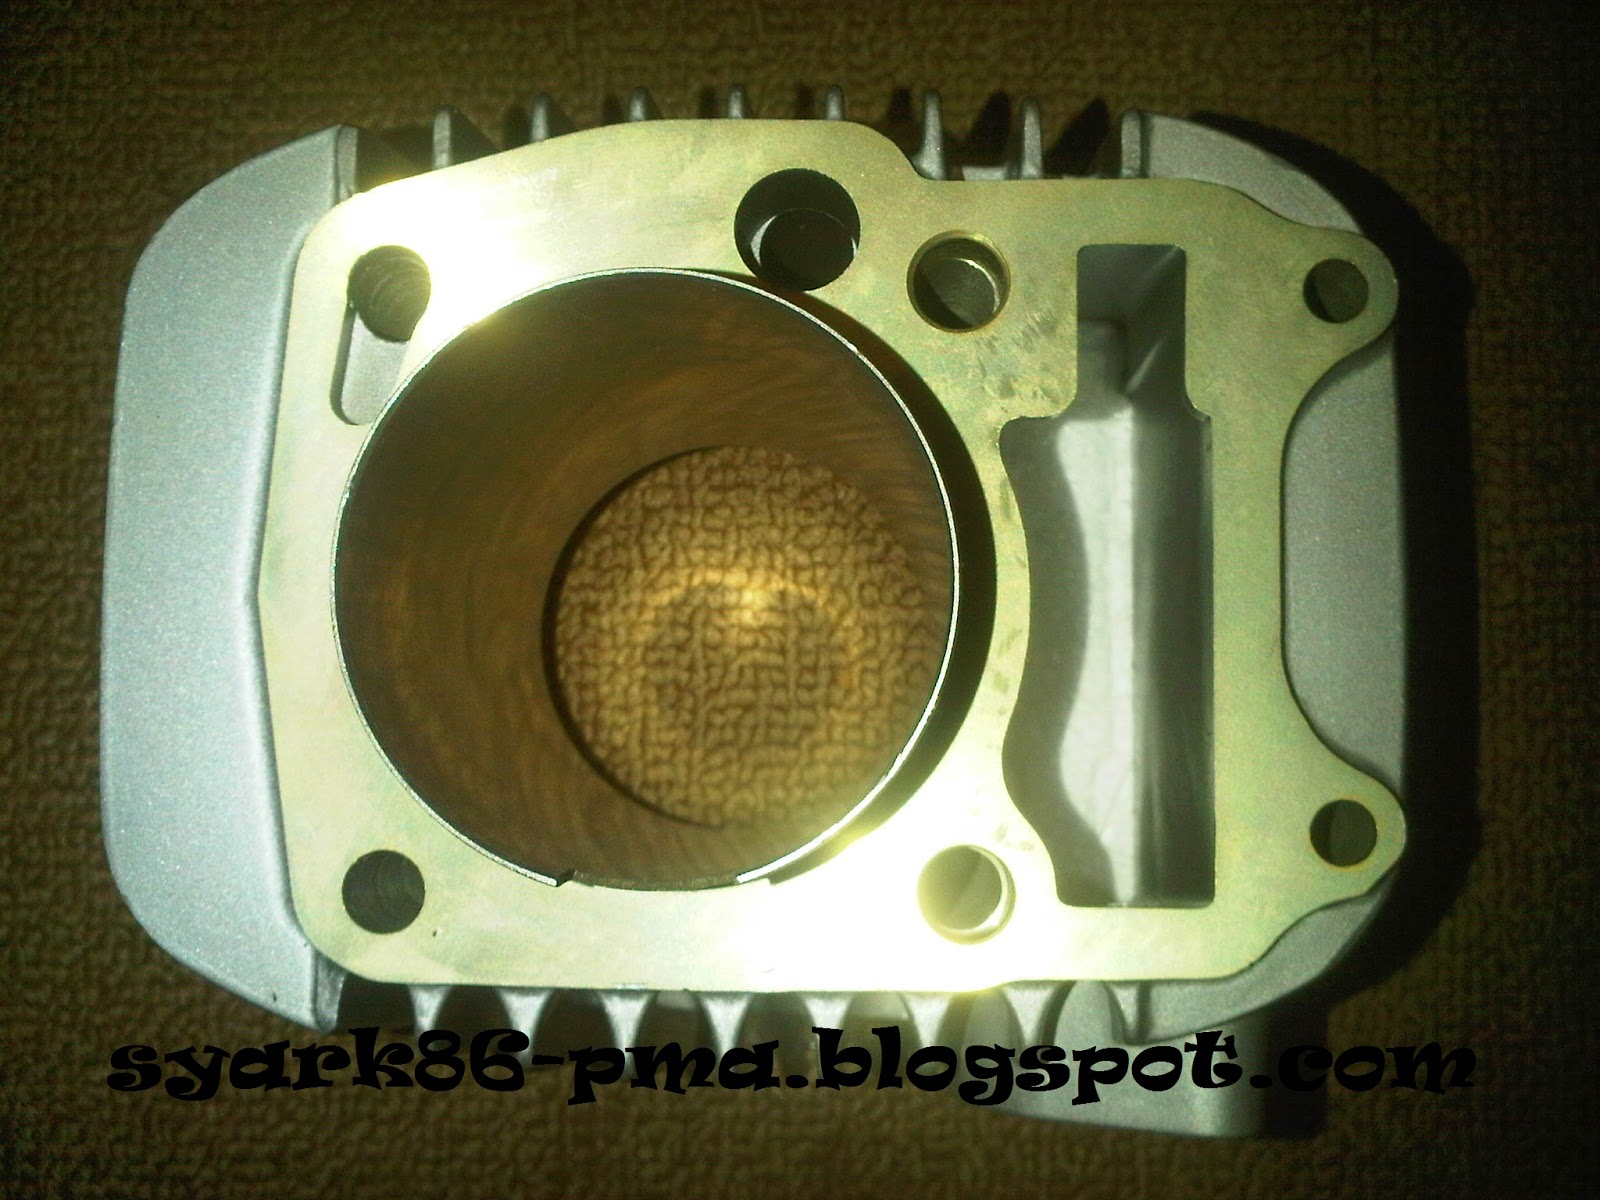 Syark Performance Motor Parts  U0026 Accessories Online Shop  Est  Since 2010   New Kozi Racing Block